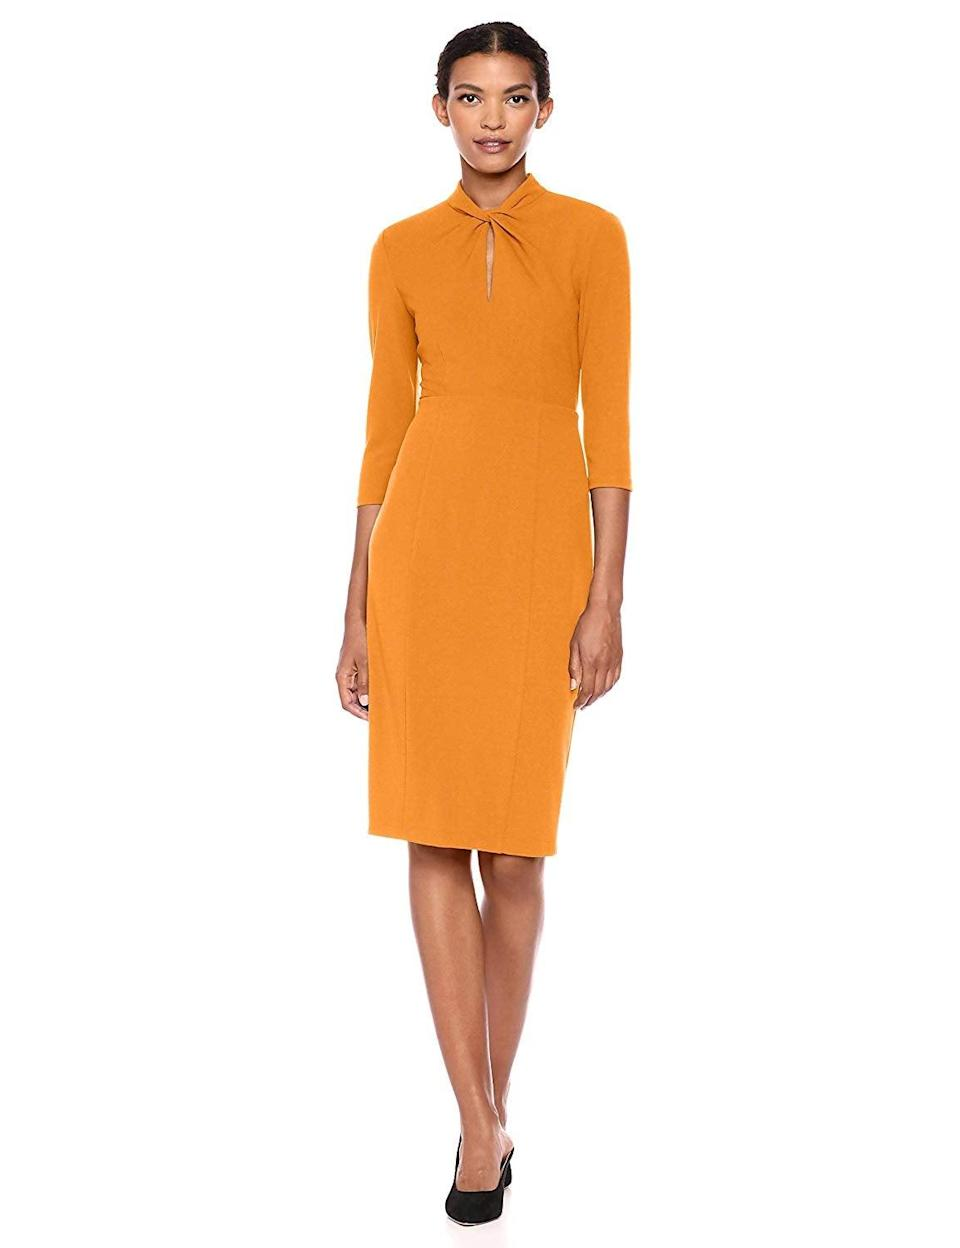 """<br><br><strong>Donna Morgan</strong> Knotted Crepe Sheath Dress, $, available at <a href=""""https://www.amazon.com/Donna-Morgan-Womens-Knotted-Sheath/dp/B07NSXQNJT"""" rel=""""nofollow noopener"""" target=""""_blank"""" data-ylk=""""slk:Amazon"""" class=""""link rapid-noclick-resp"""">Amazon</a>"""